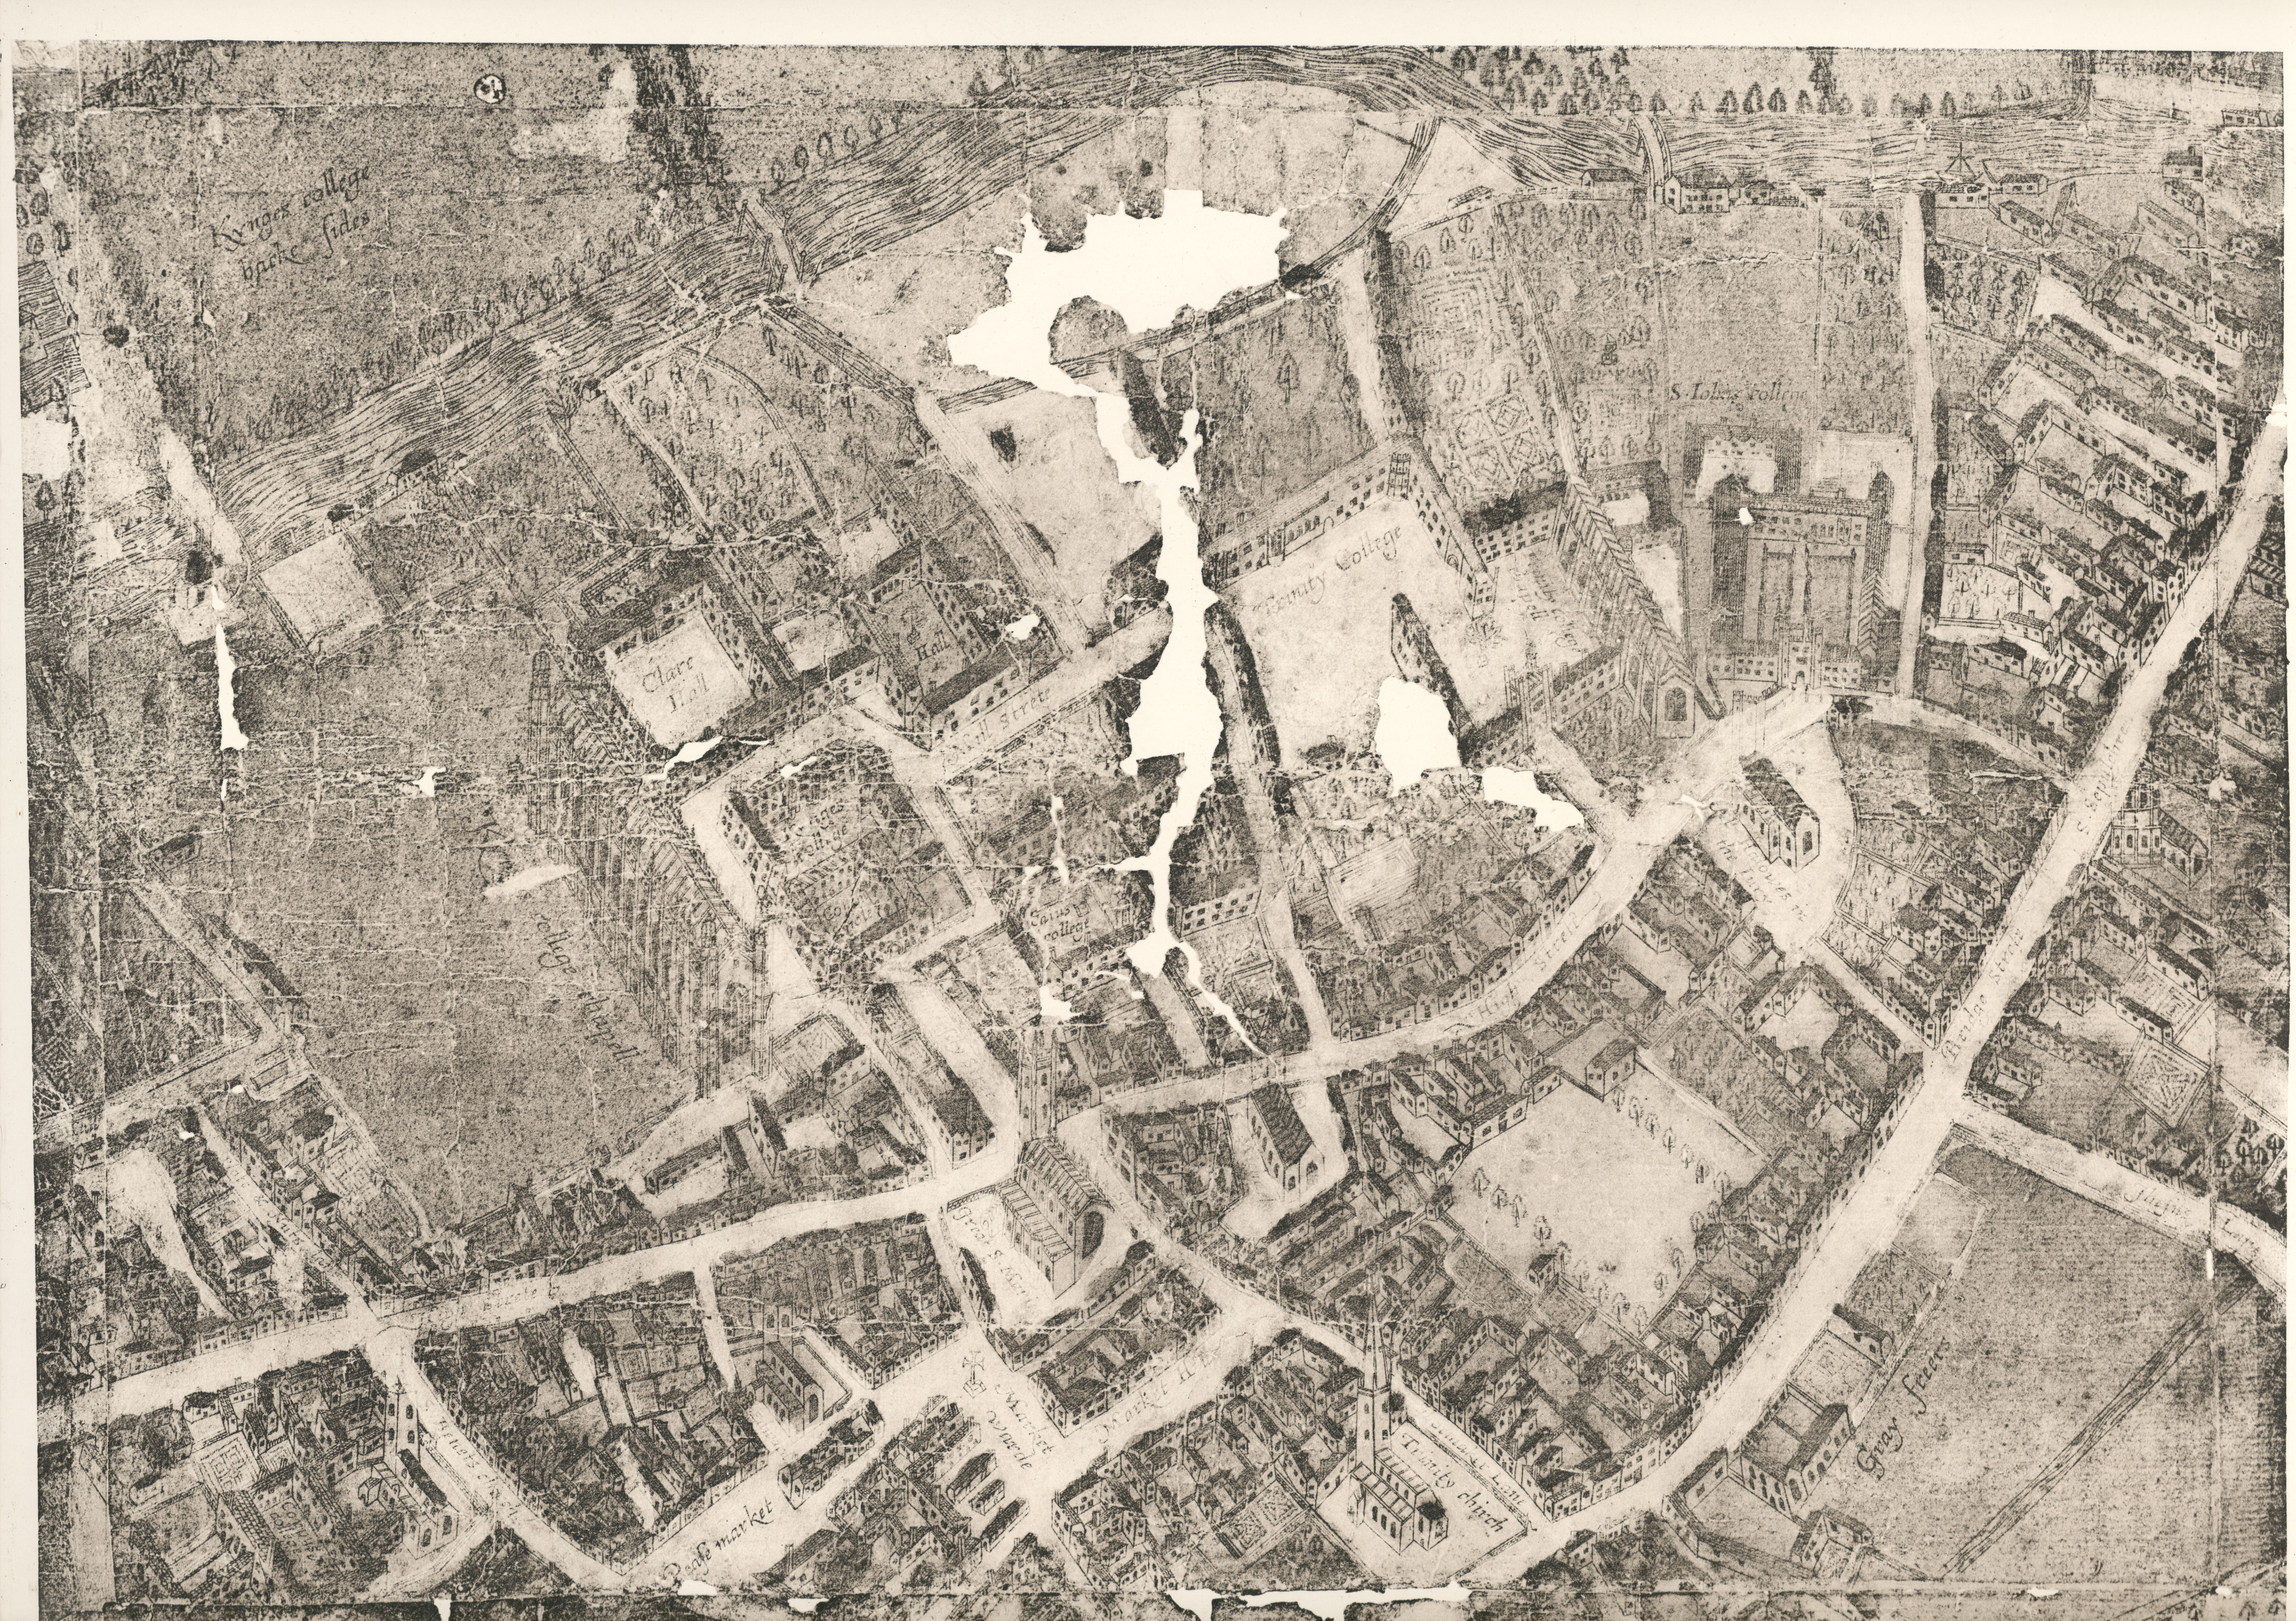 Part of a birds-eye view of Cambridge, measured and drawn by John Hamond of Clare Hall, 22 February 1592, showing the current Chapel, the Old Court and other early College buildings. [Clark and Gray, plate 3 sheet 9]